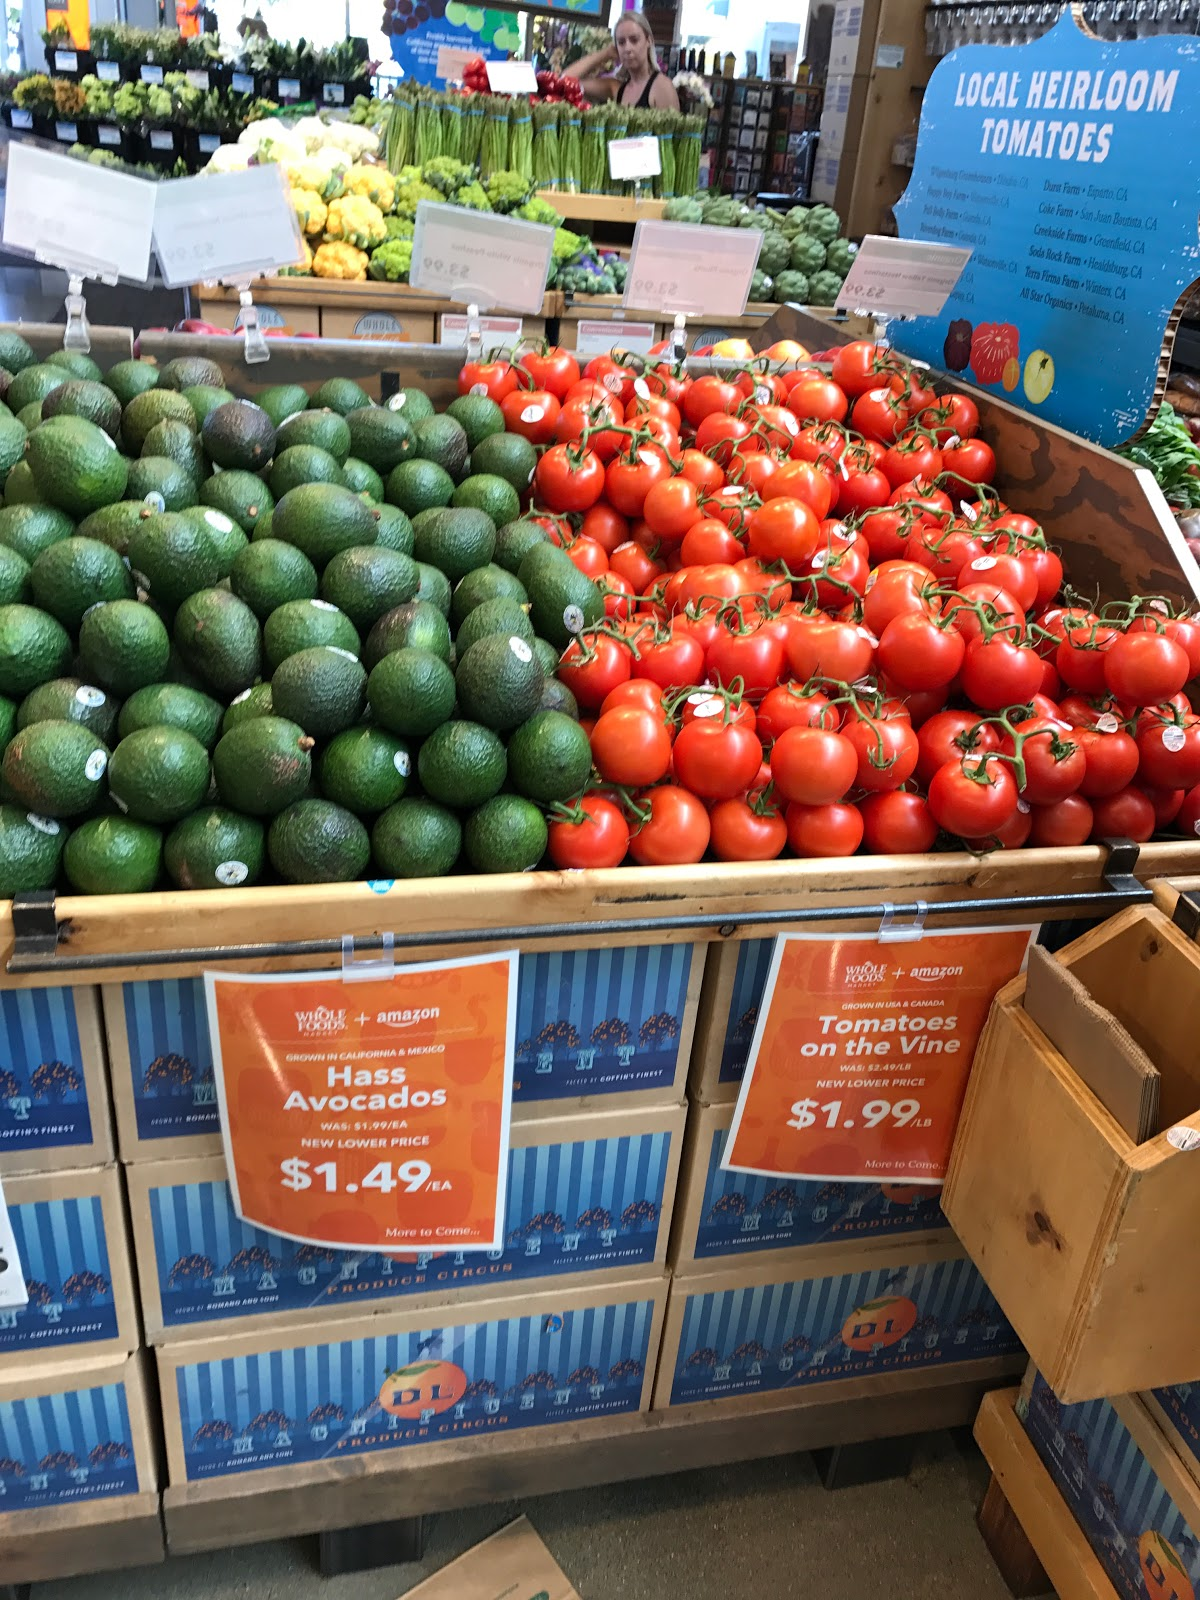 Is Whole Foods Better Than Other Grocery Stores